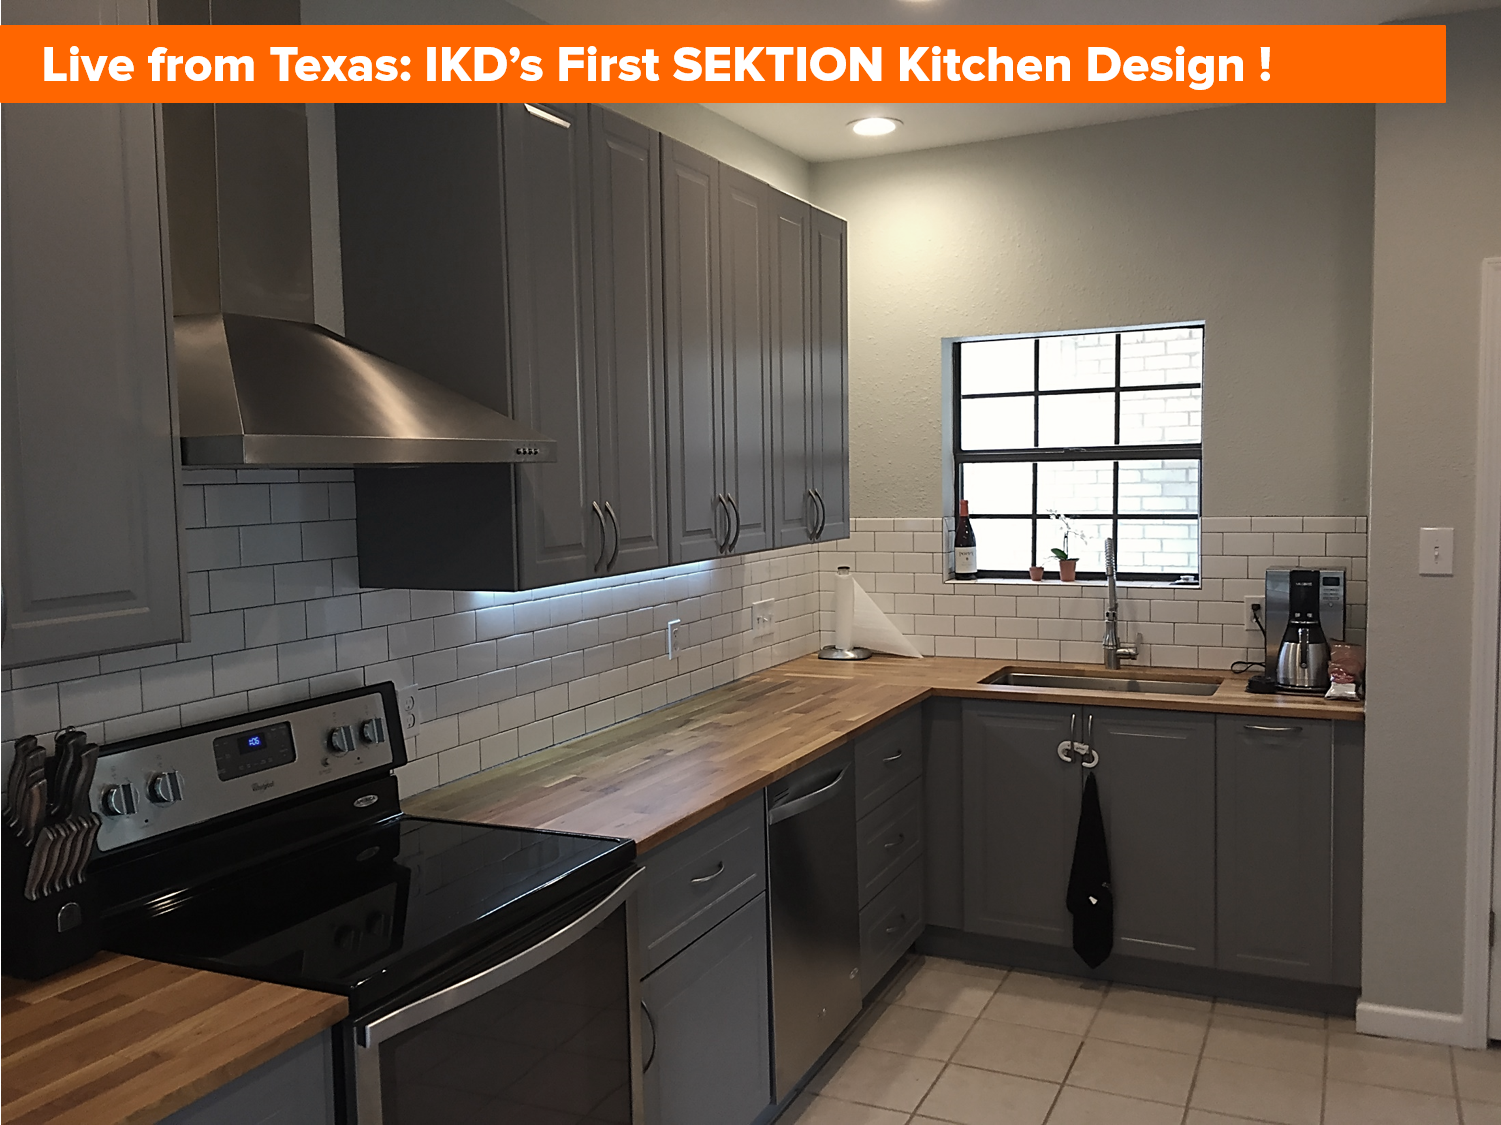 live from texas: photos of ikd's first ikea kitchen design using